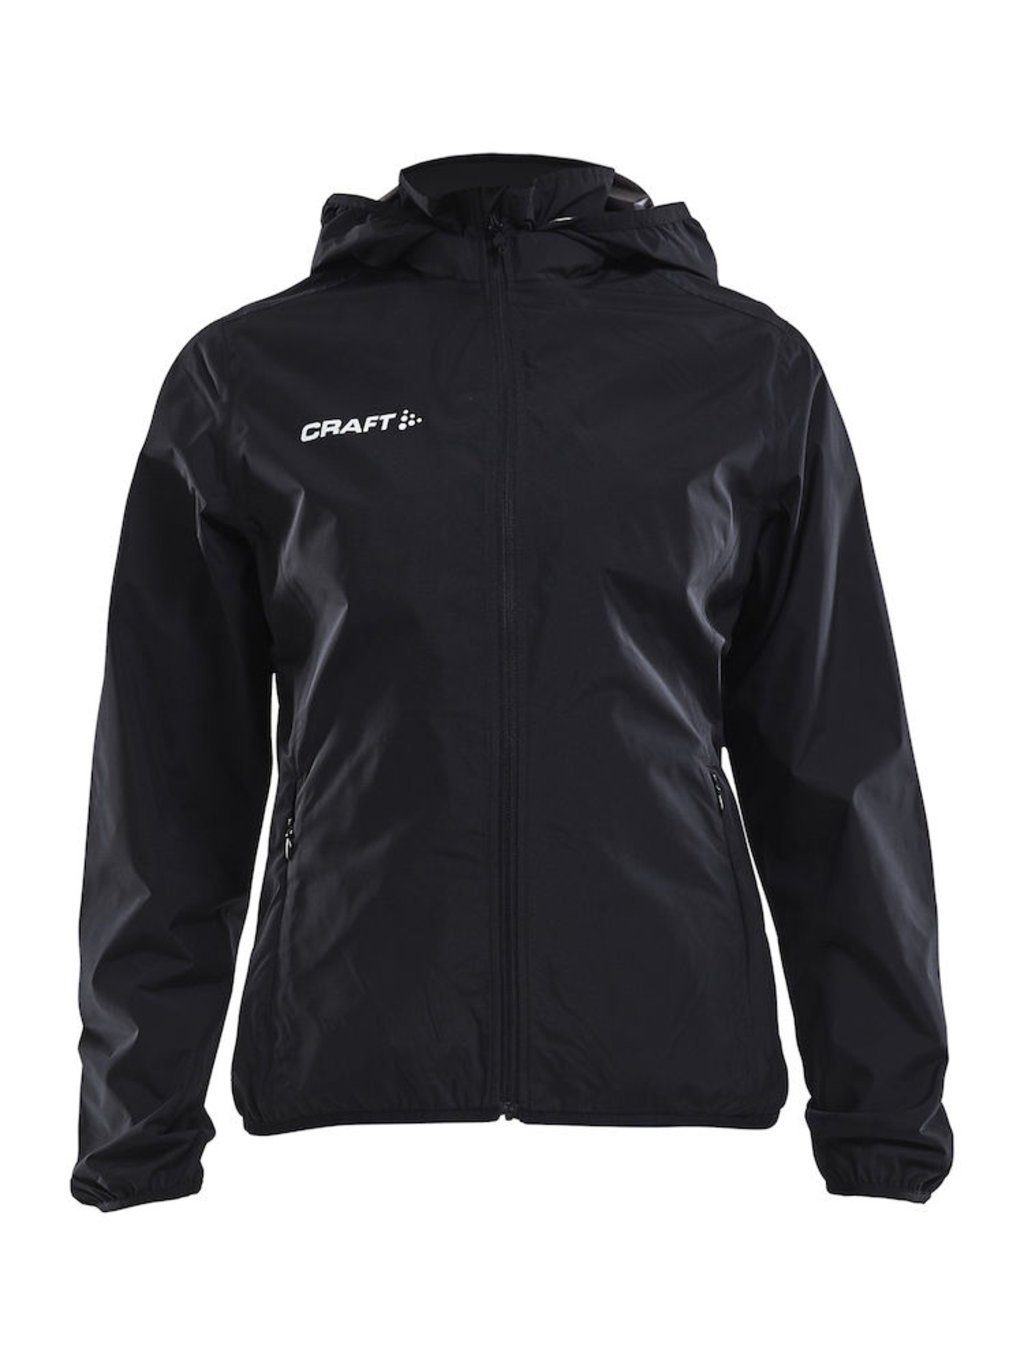 Craft women's rain jacket, Black